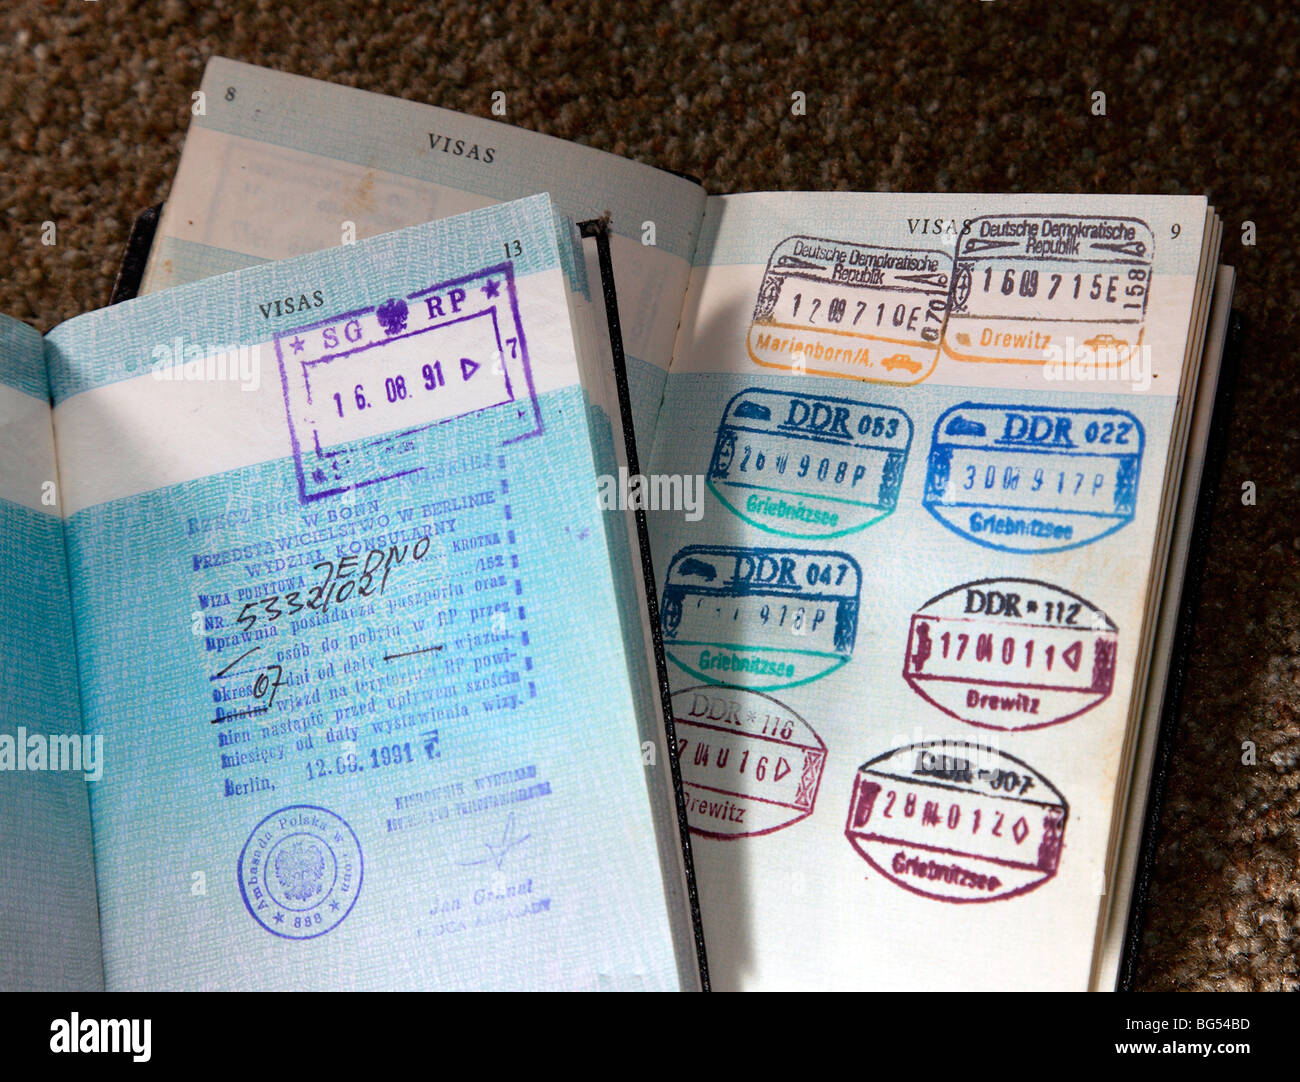 old visas in old style British passport - Stock Image